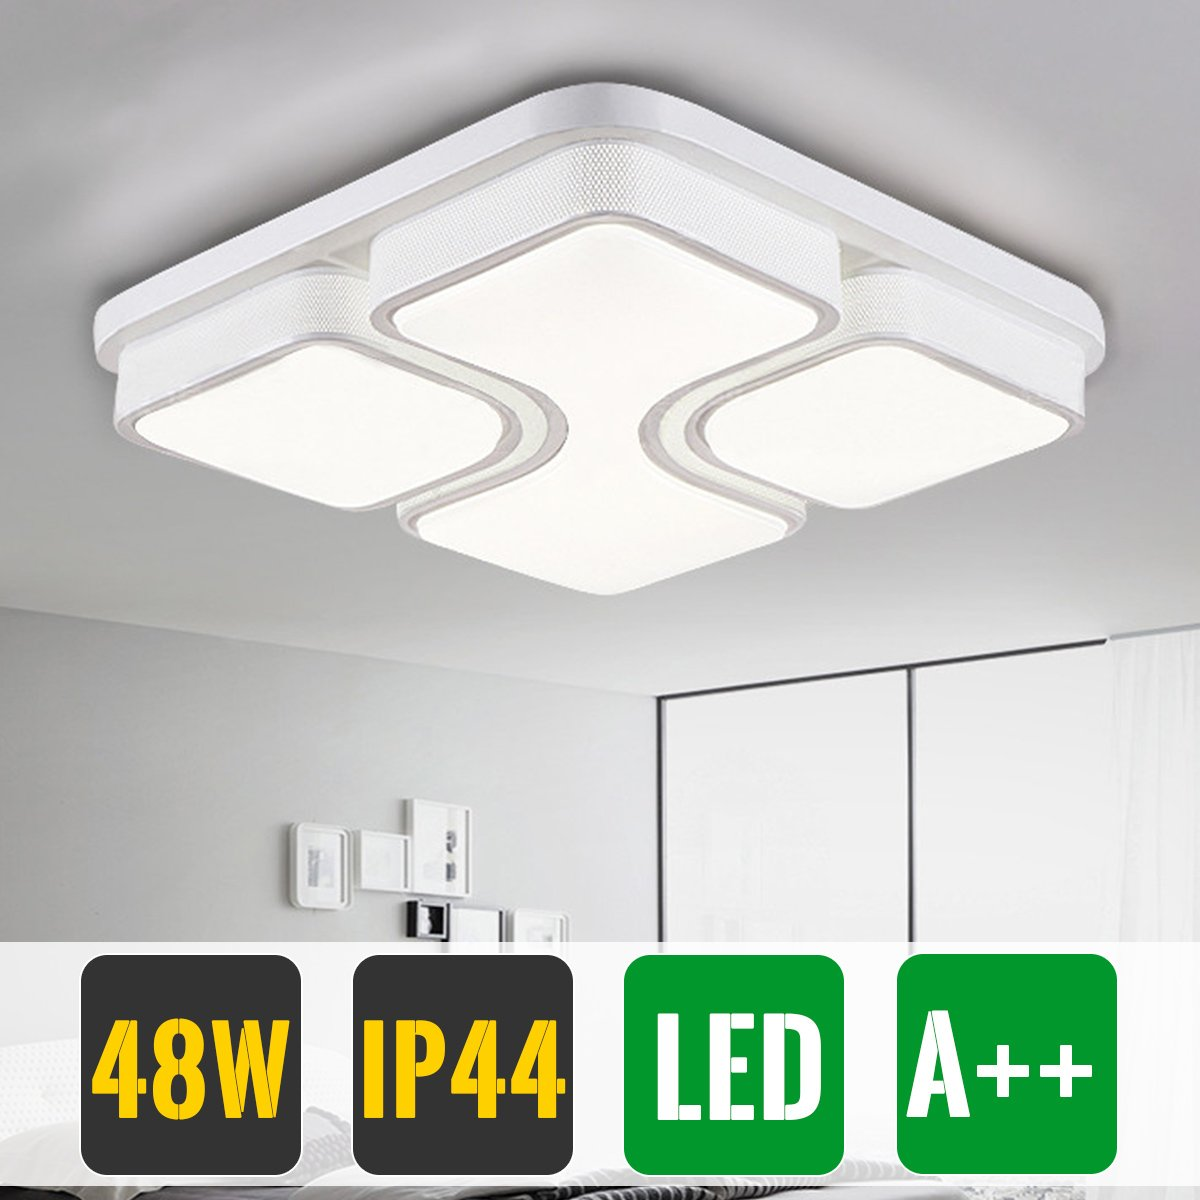 HG 64W LED Ceiling Light Ceiling Lamp Modern IP44 Square Ceiling Light Fixture For Bedroom Dining Room Kitchen Office Corridor Bebe [Energy Class A ++] huigou